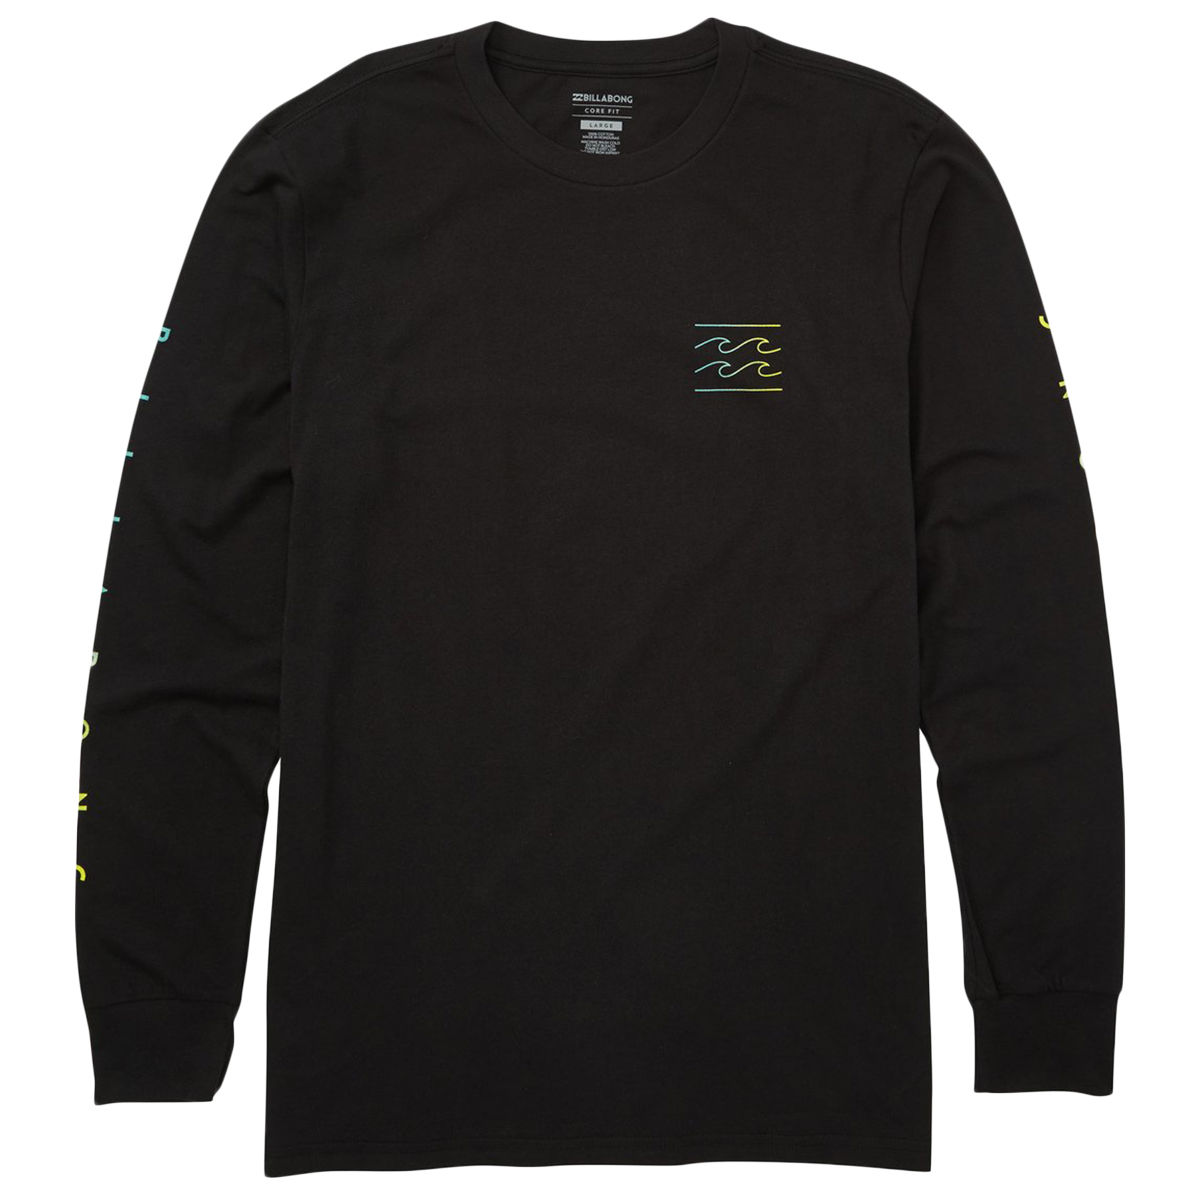 Billabong Guys' Unity Sleeves Long-Sleeve Tee - Black, M